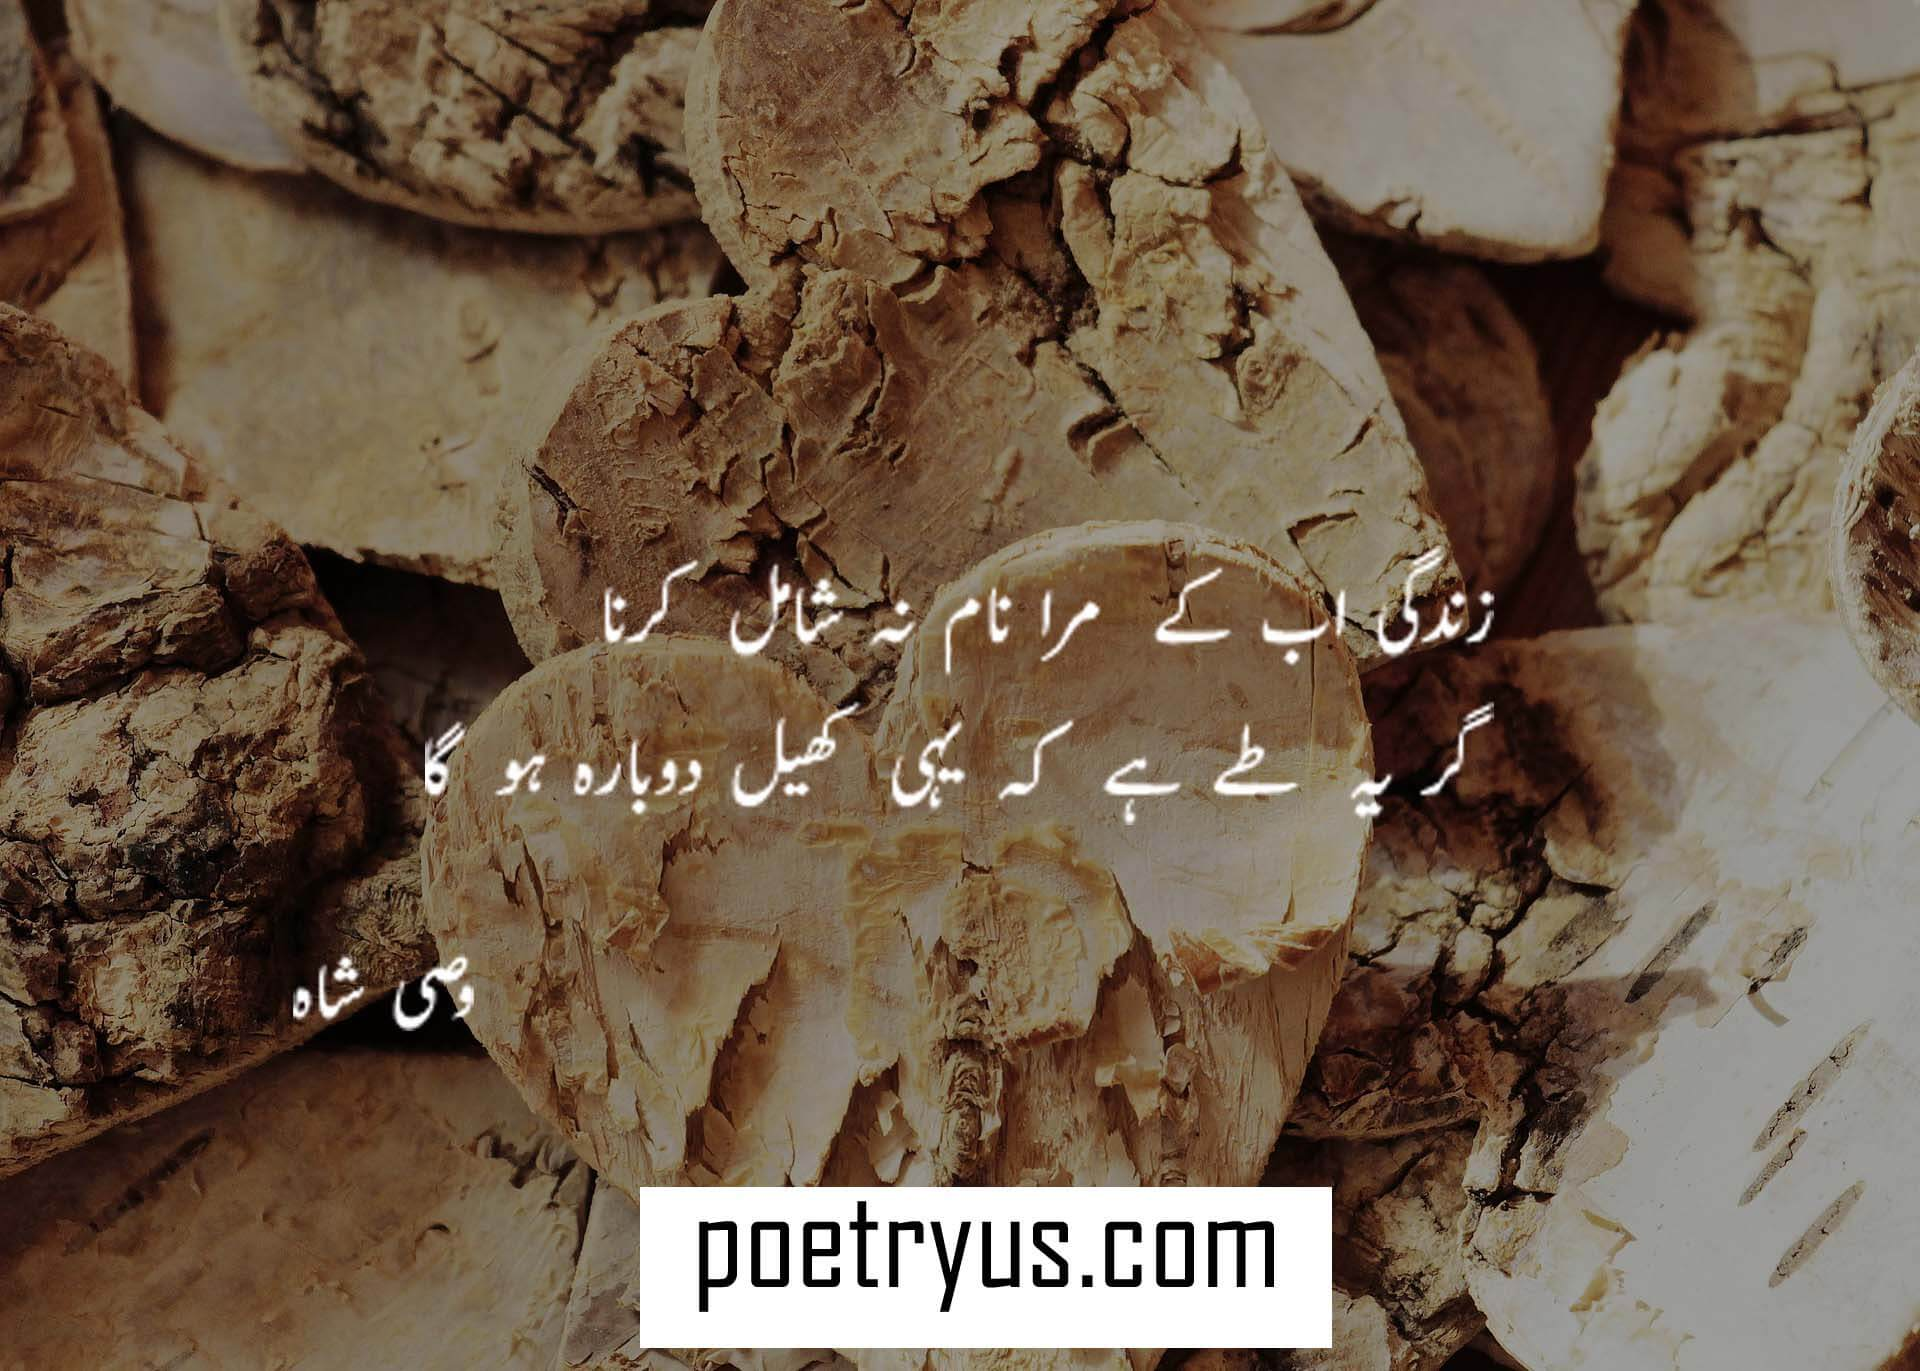 wasi shah poetry messages